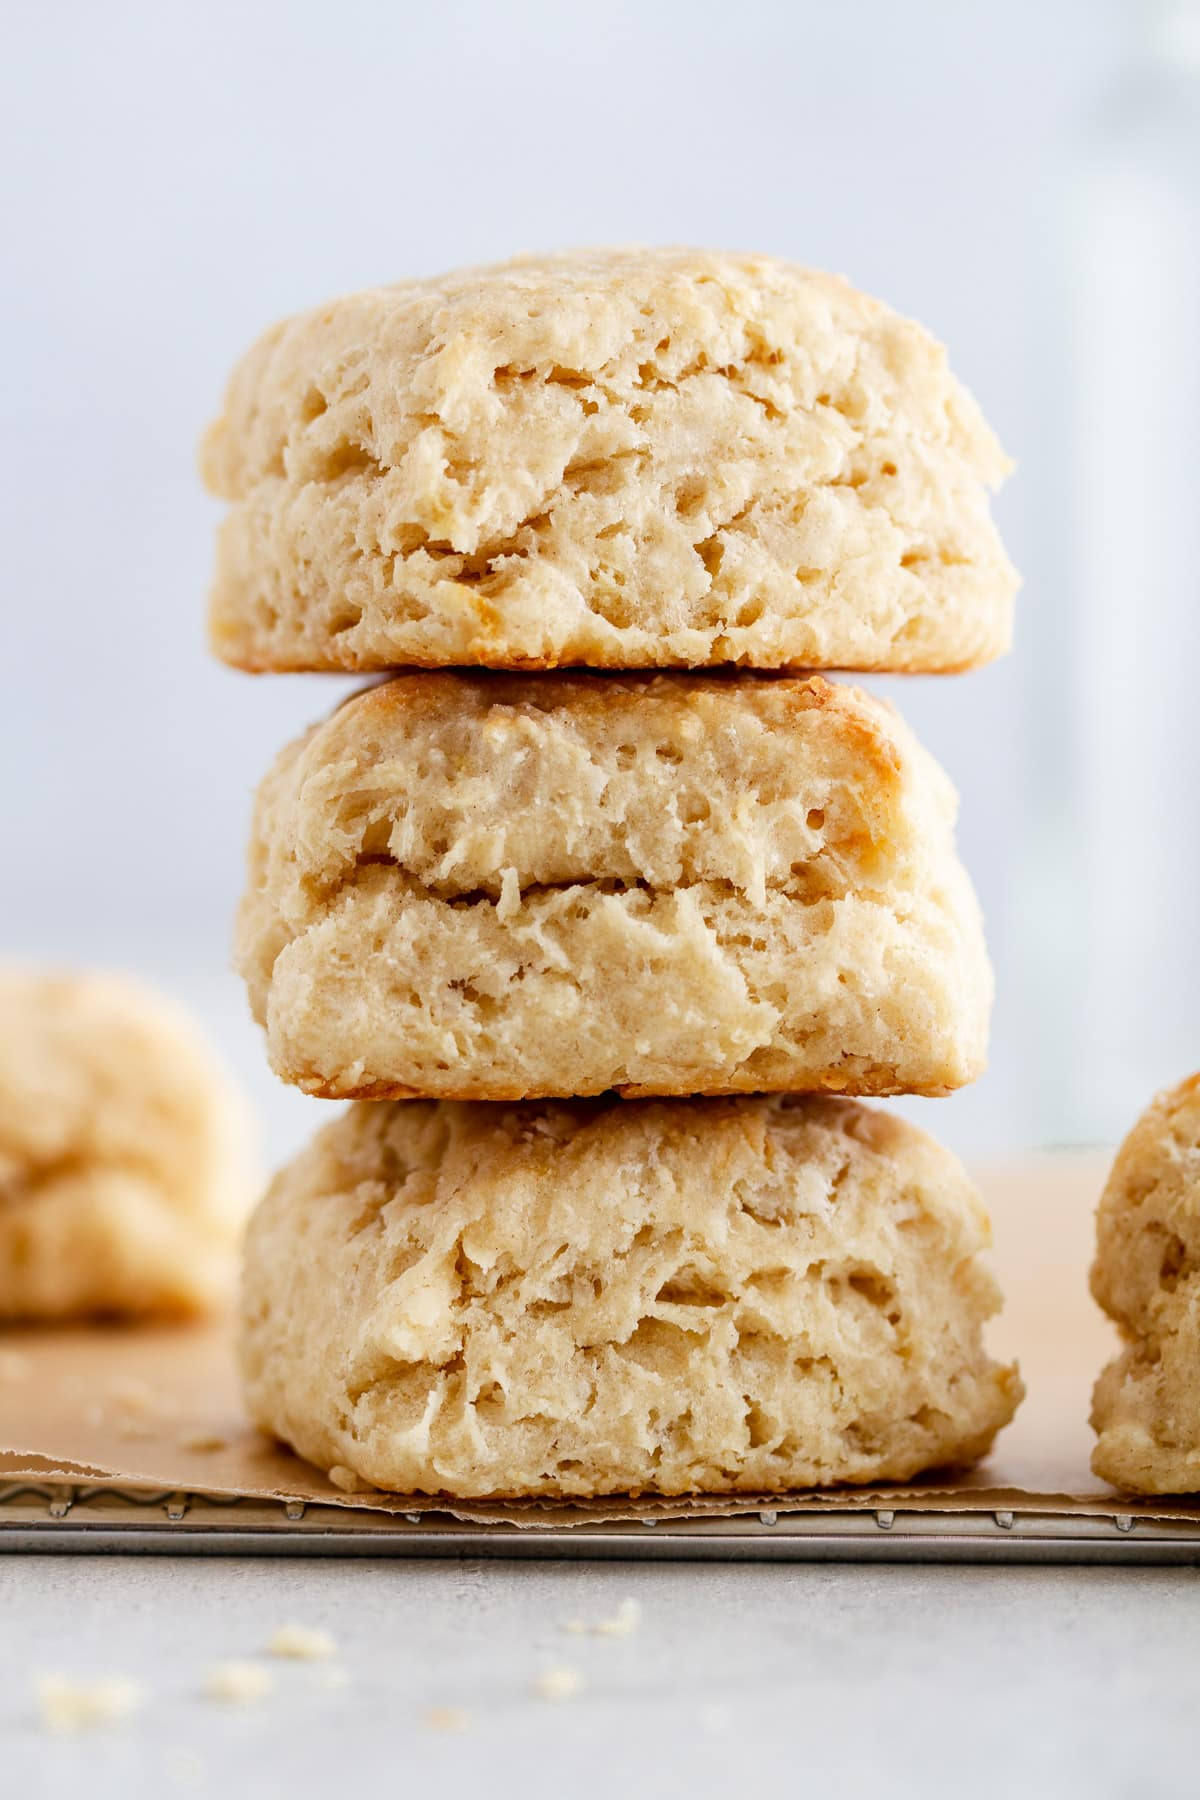 Flaky Fluffy Southern Buttermilk Biscuits Recipe Girl Versus Dough